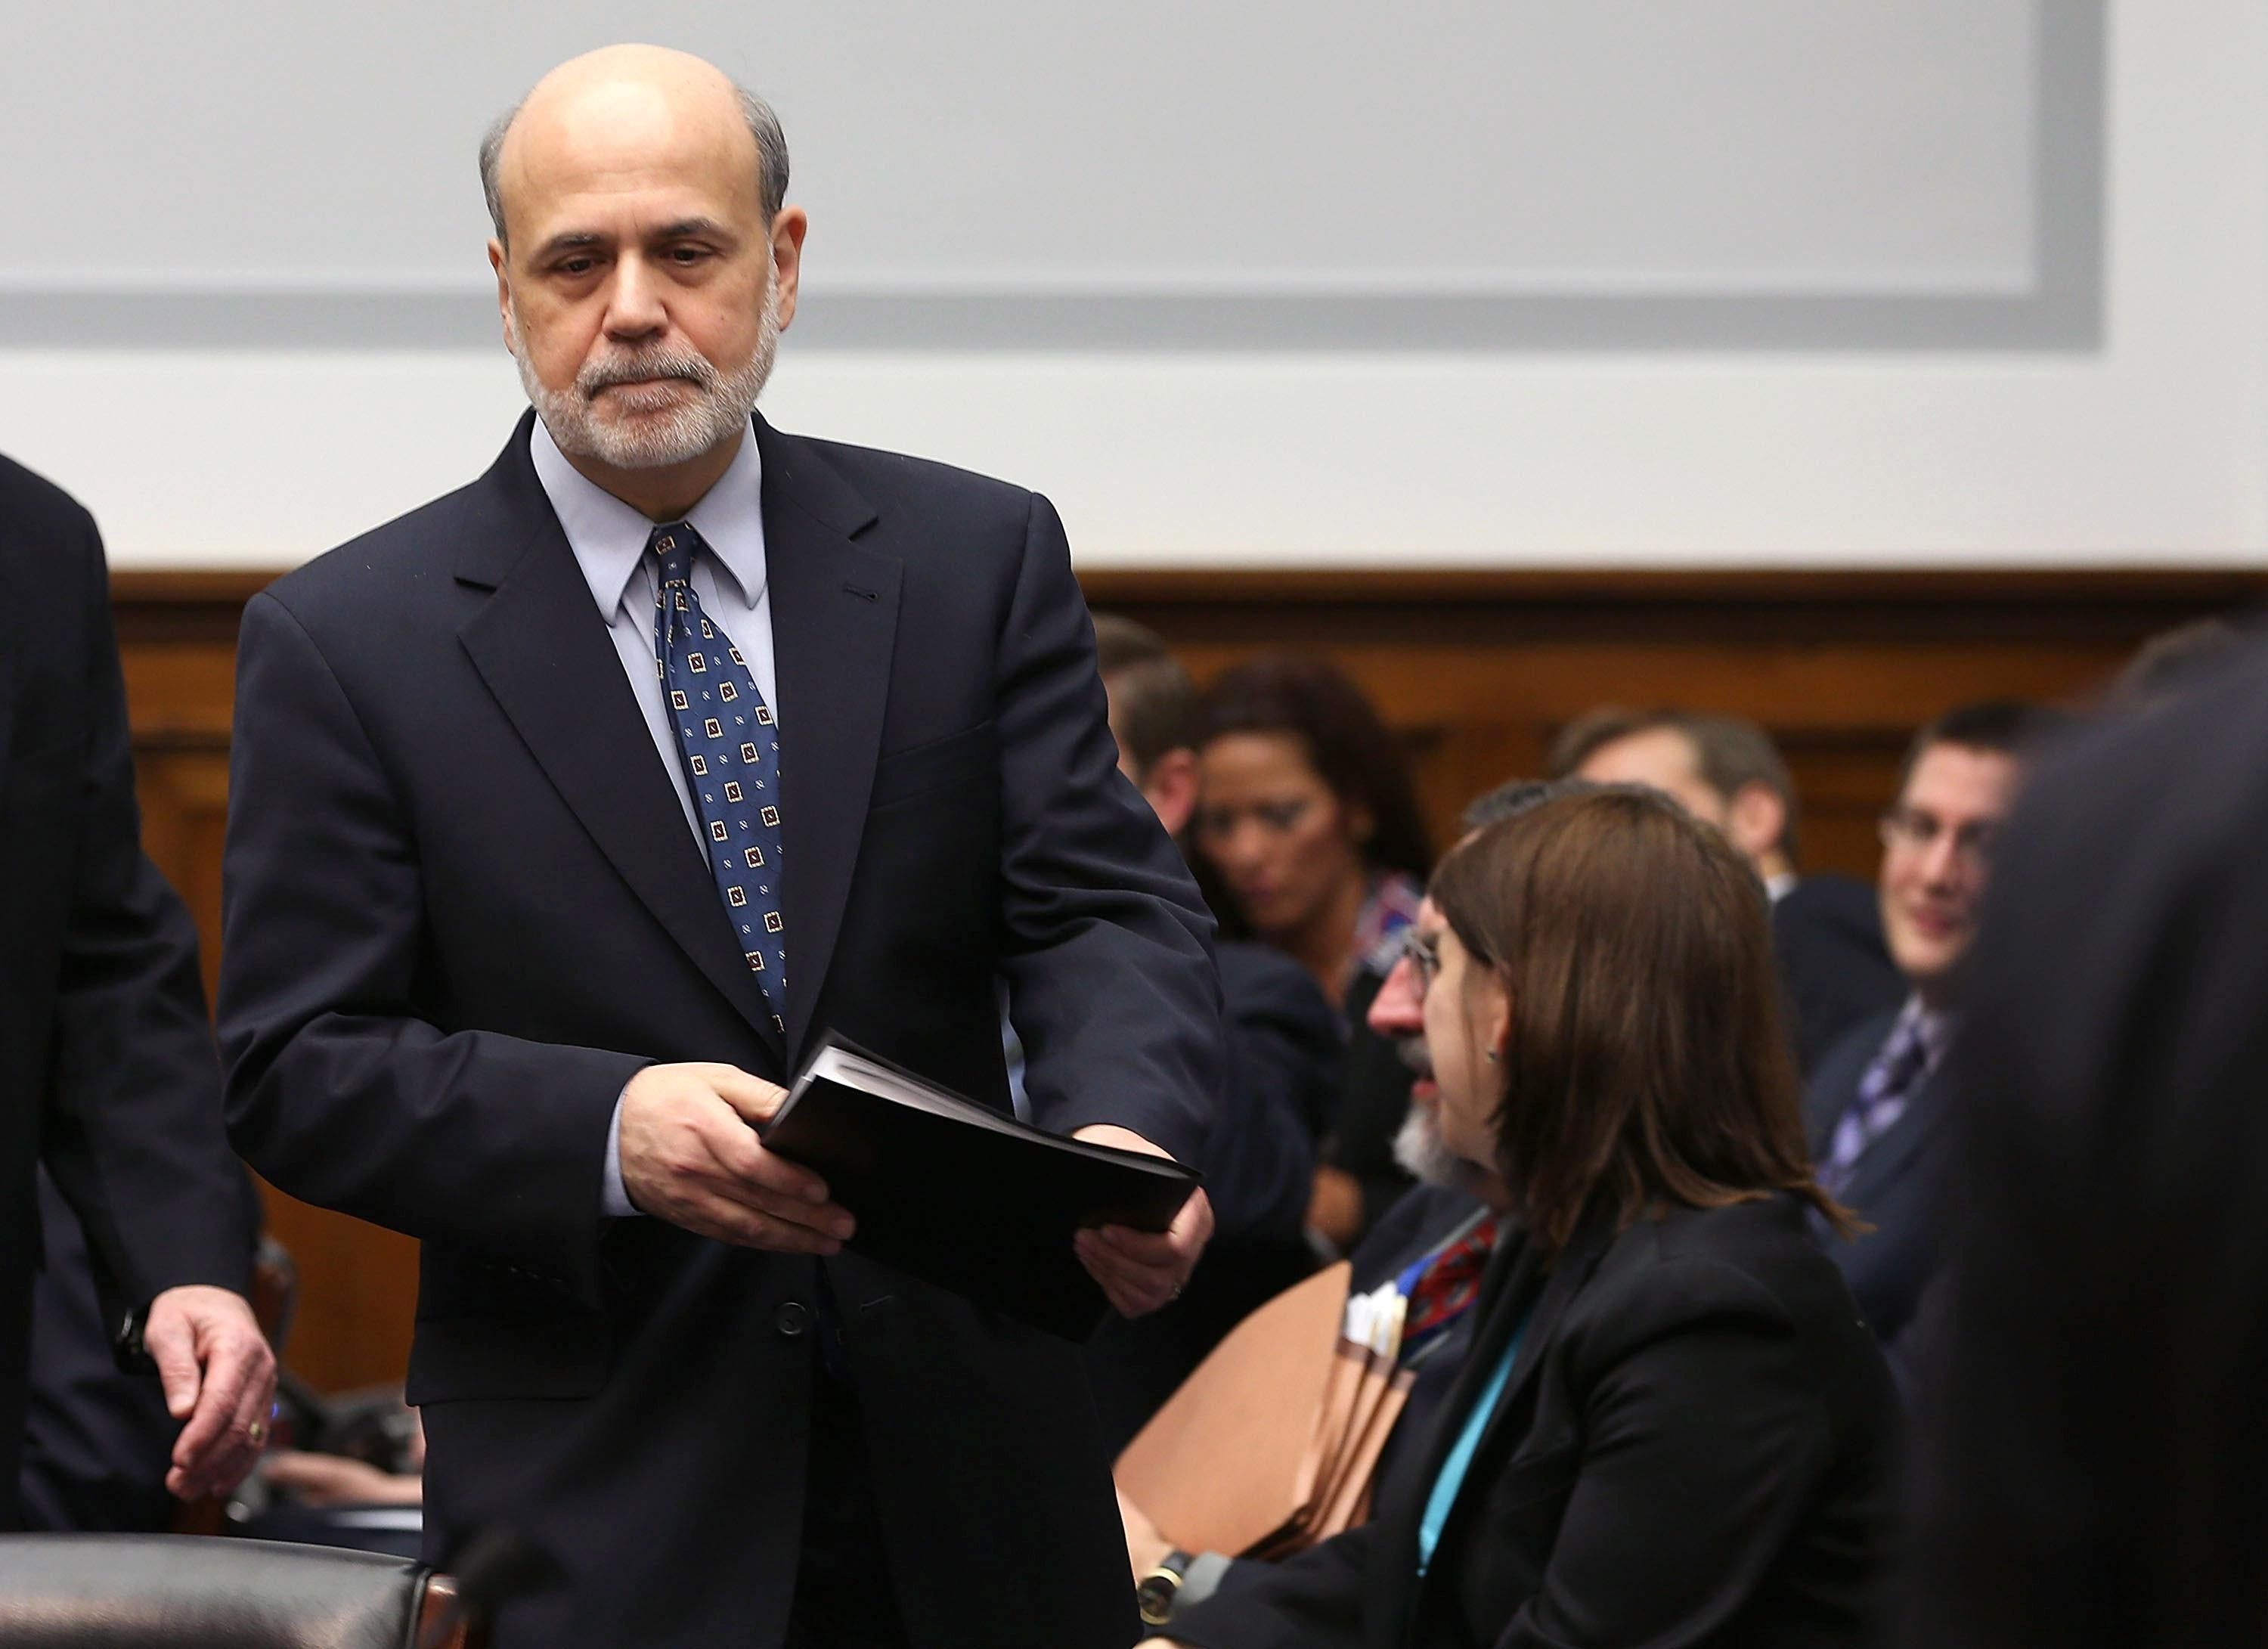 Federal Reserve Board Chairman Ben Bernanke arrives at a House Financial Services Committee hearing on Capitol Hill, Feb. 27, 2013.